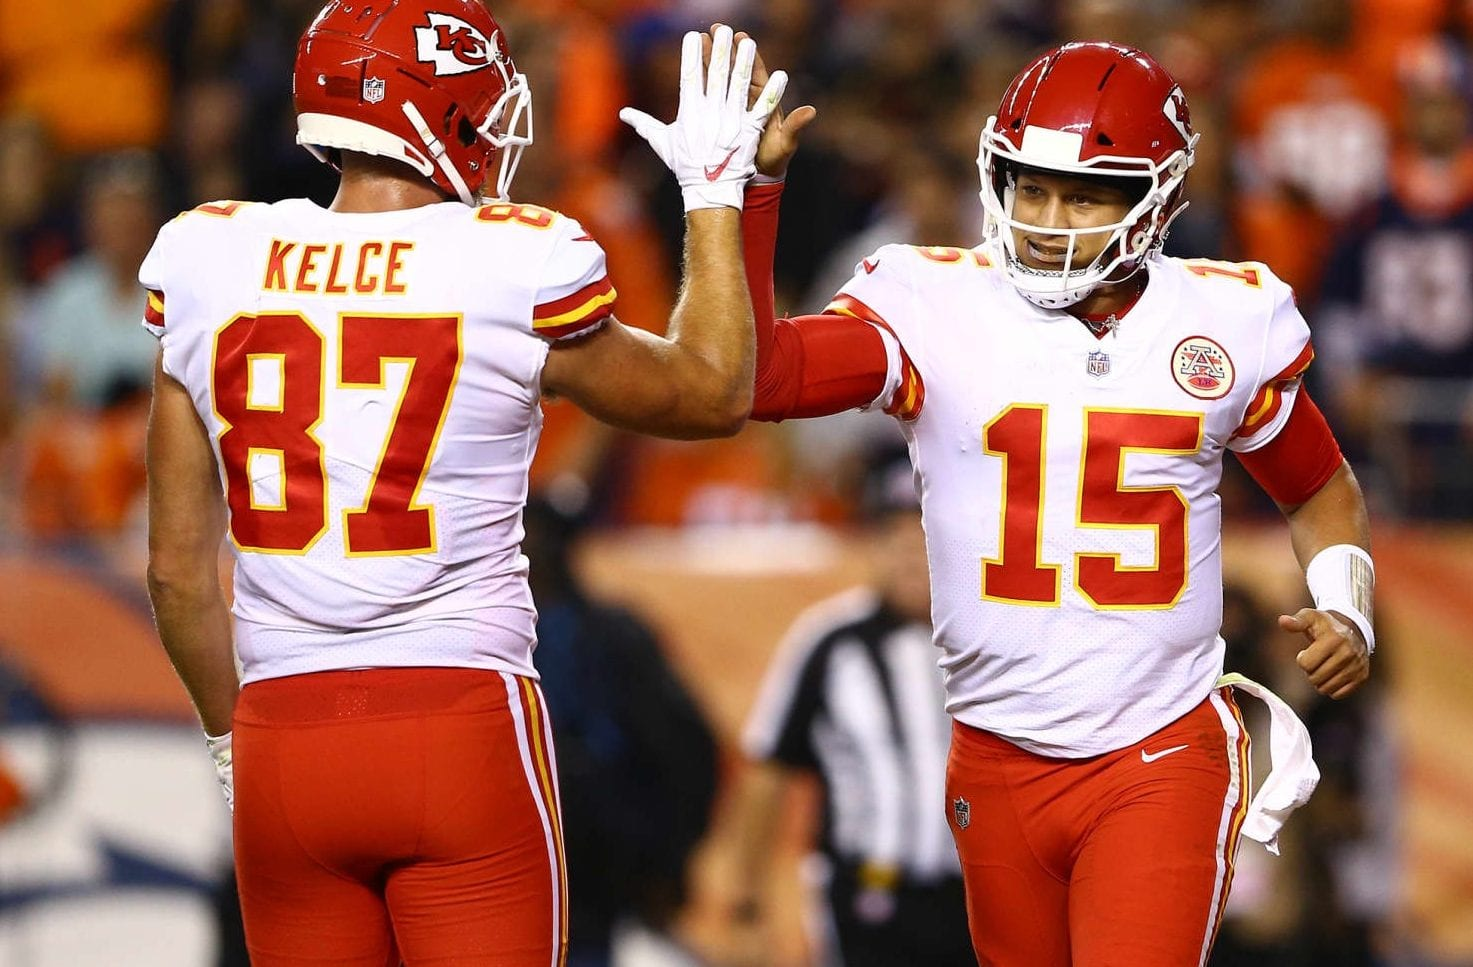 Odds Week Chiefs Nfl Interaction Prediction Sports 9 Spread Browns Point Vs